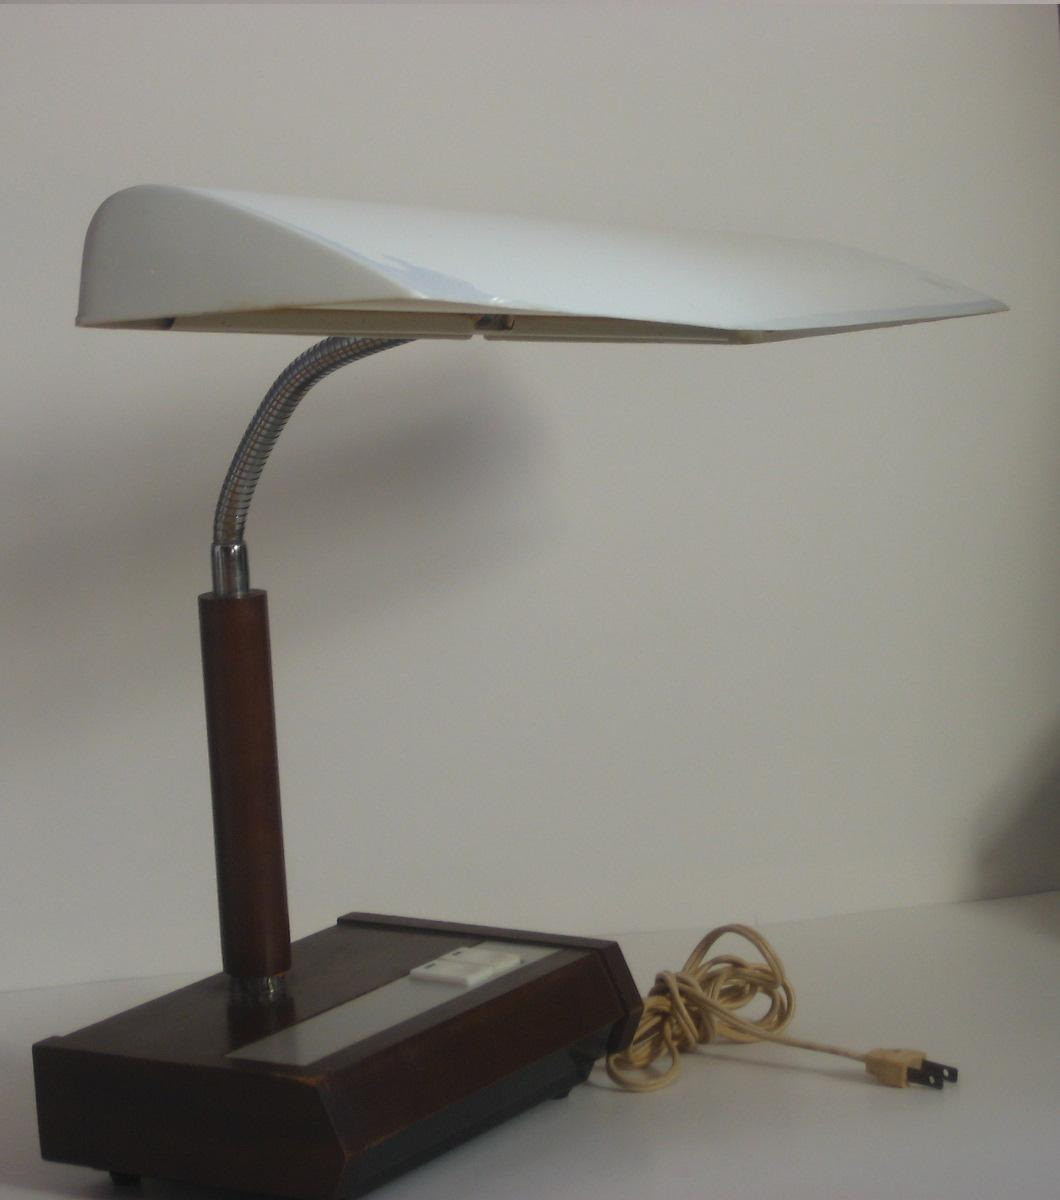 Best ideas about Fluorescent Desk Lamp . Save or Pin Chandeliers & Pendant Lights Now.